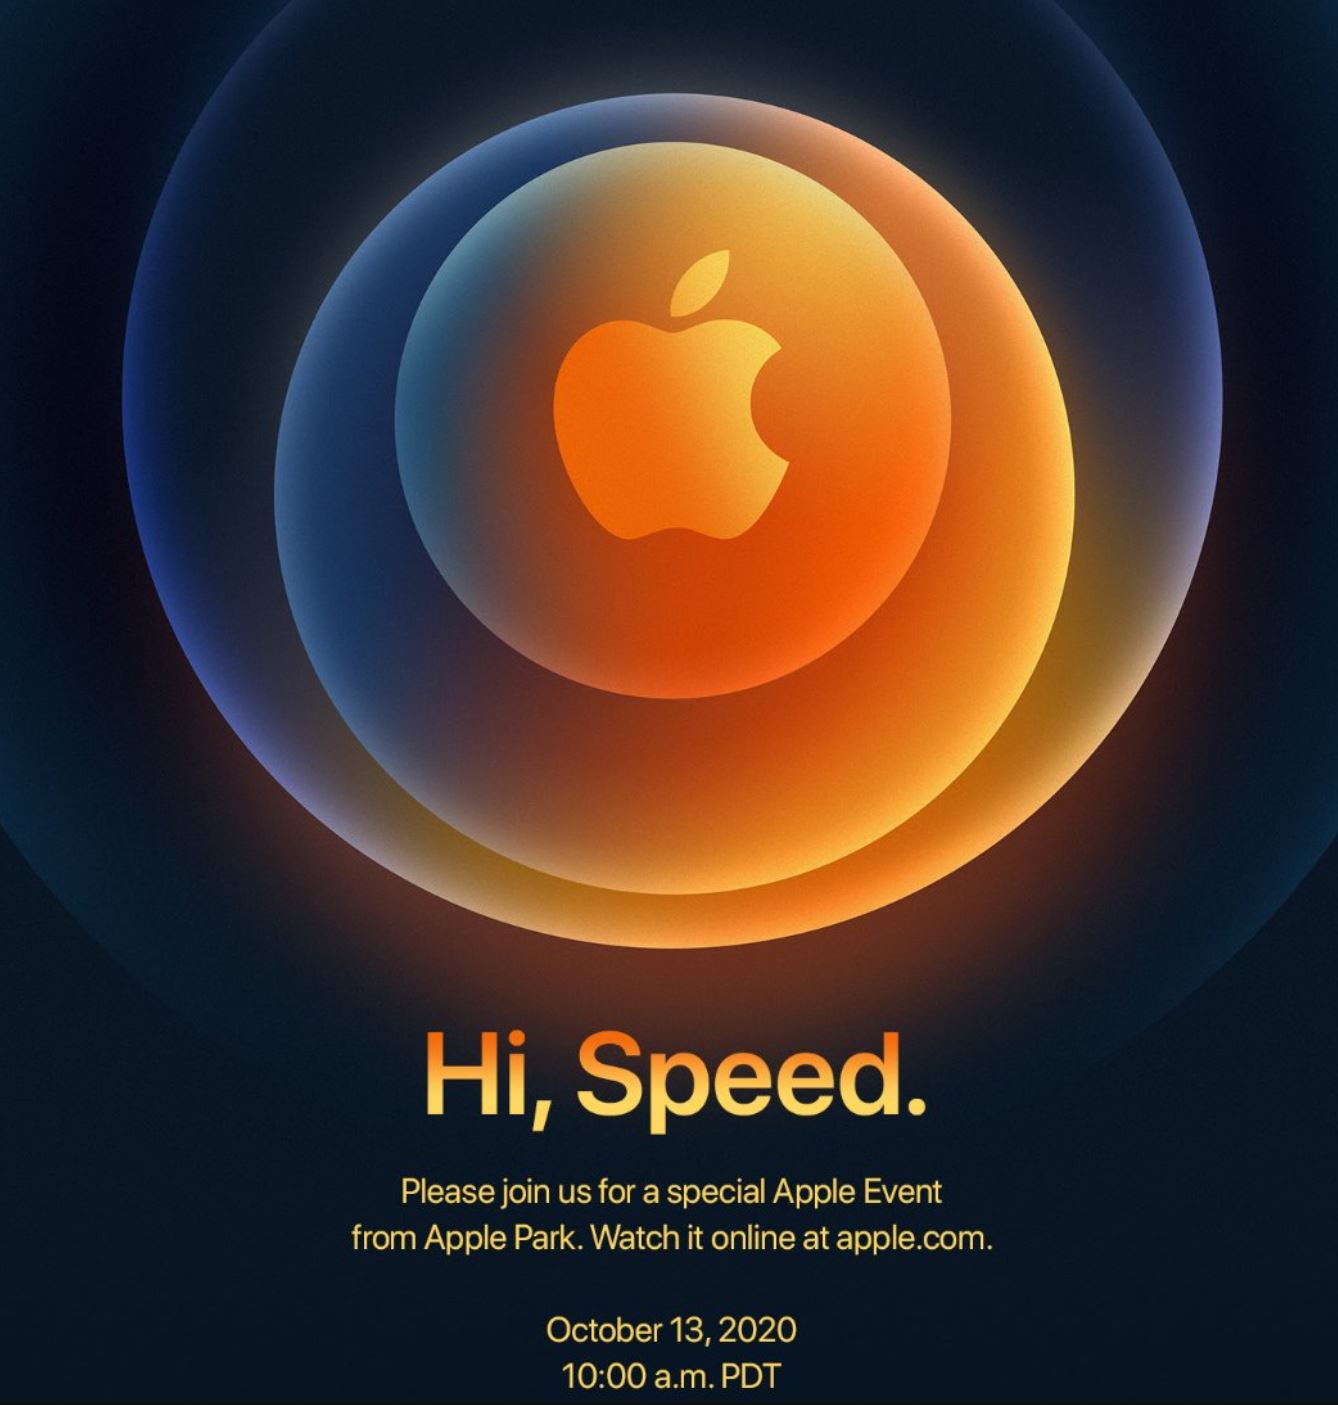 Apple sends out invites to likely iPhone 12 launch event